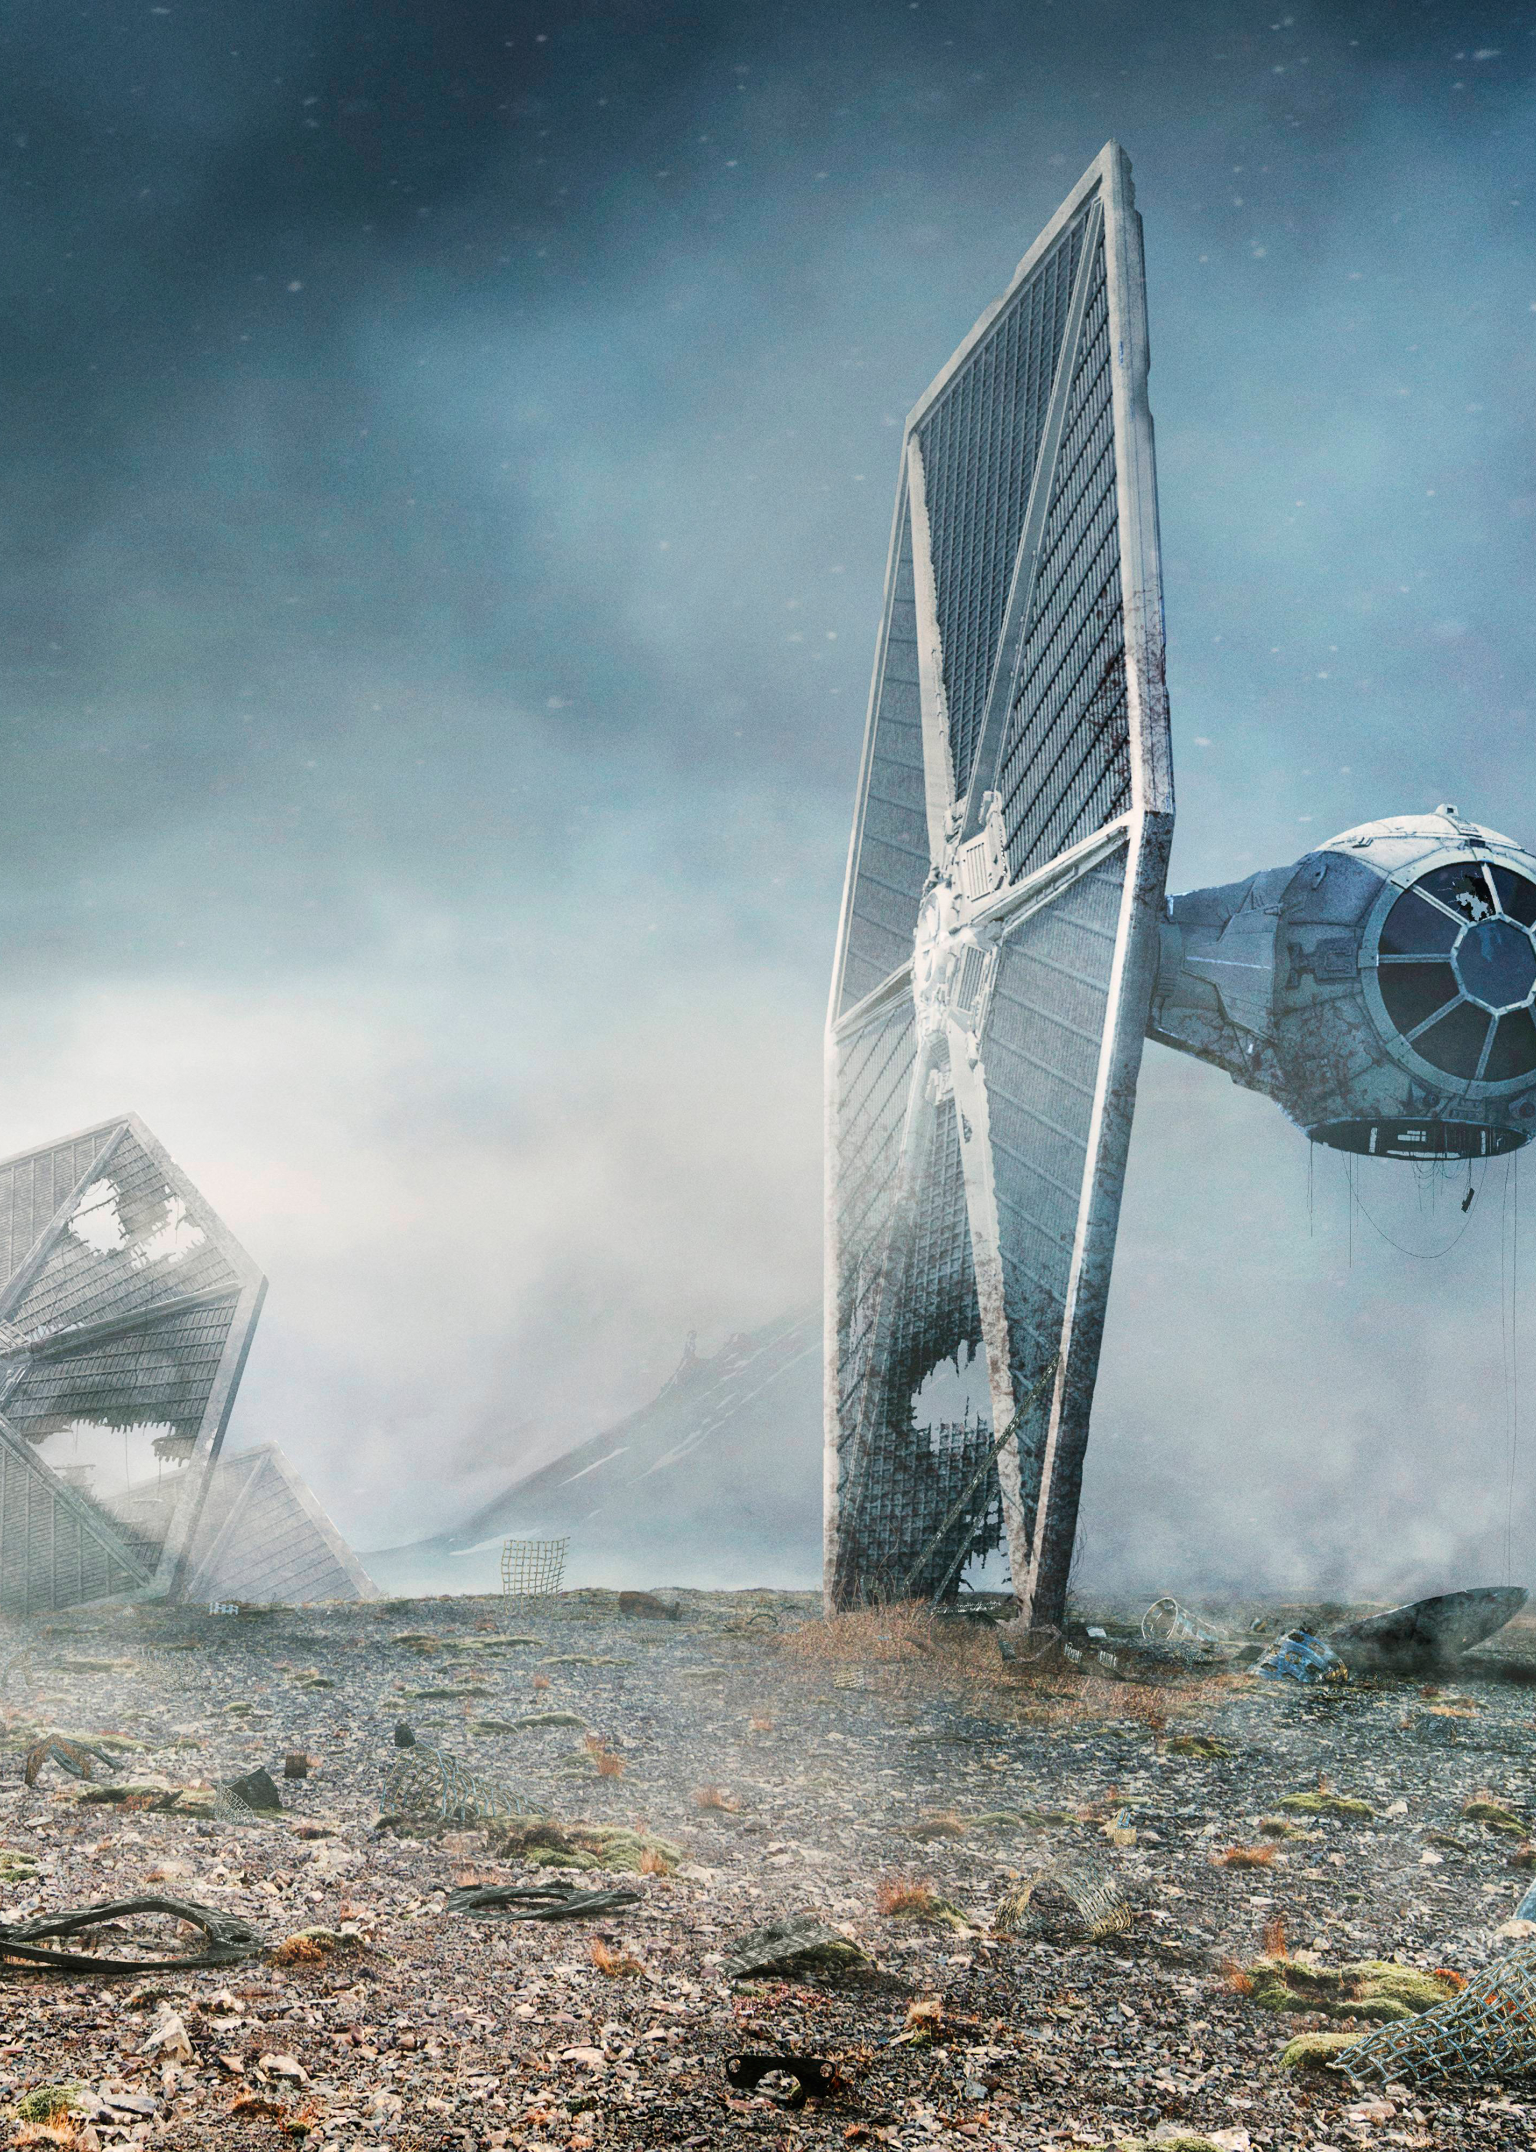 1536x2152 Tie Fighter Star Wars 1536x2152 Resolution Wallpaper Hd Movies 4k Wallpapers Images Photos And Background